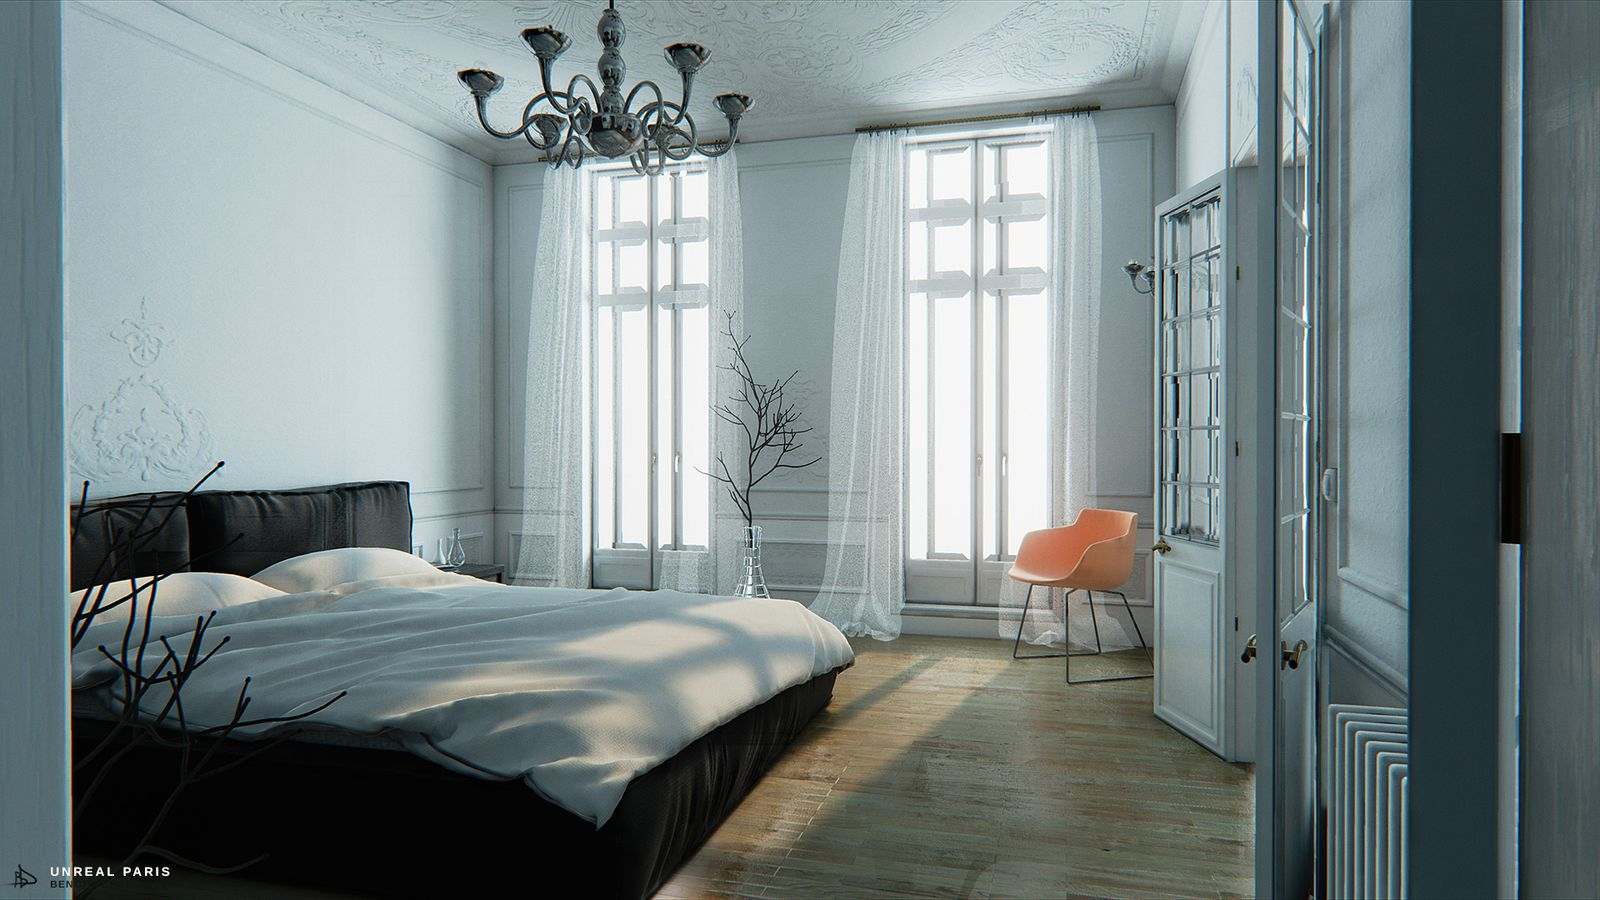 Fall Textures Wallpaper This Paris Apartment Is A Better Unreal 4 Demo Than Epic S